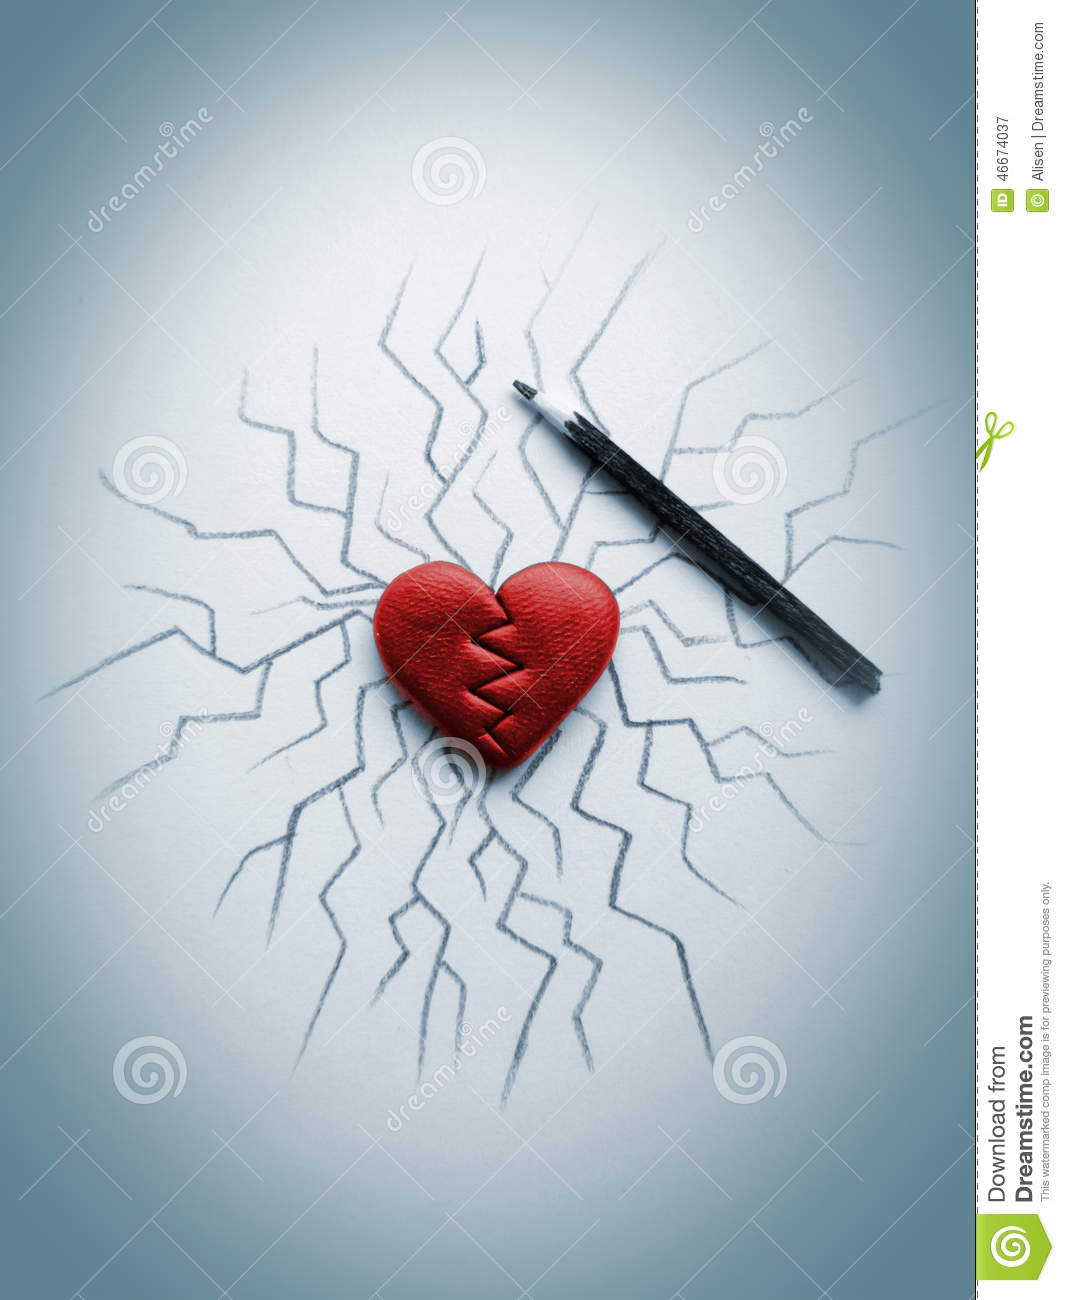 essay on heart broken Broken open love letter for broken hearted souls by jeanette leblanc  face and a  lifetime ocean of tears being pulled like the tides from your obliterated heart.